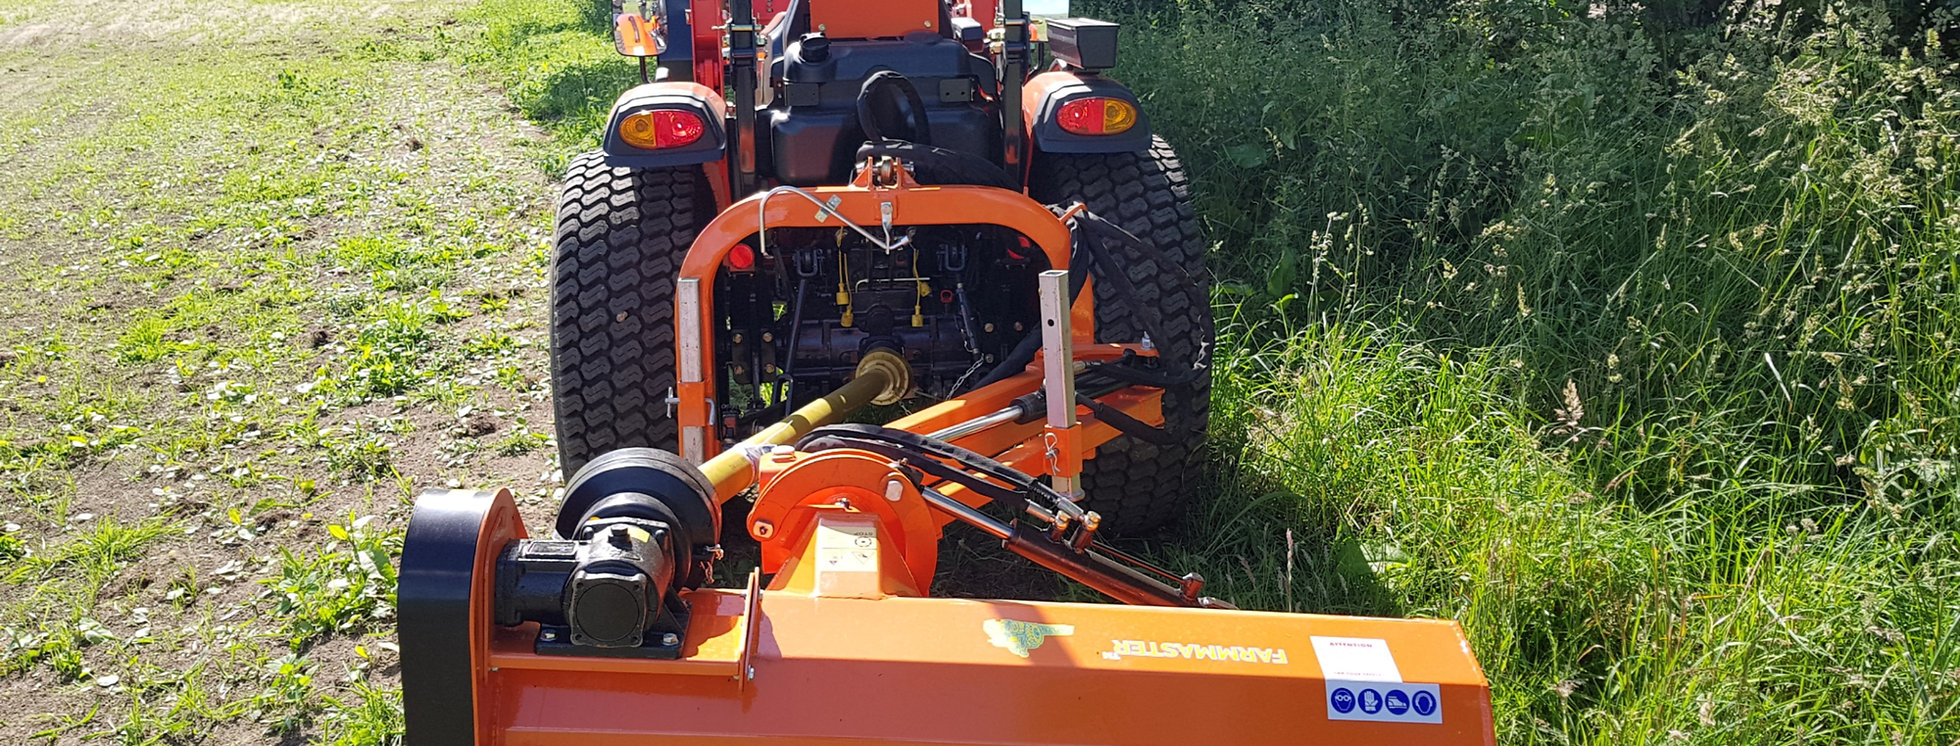 Walk Behind Flail Mower For Sale Uk